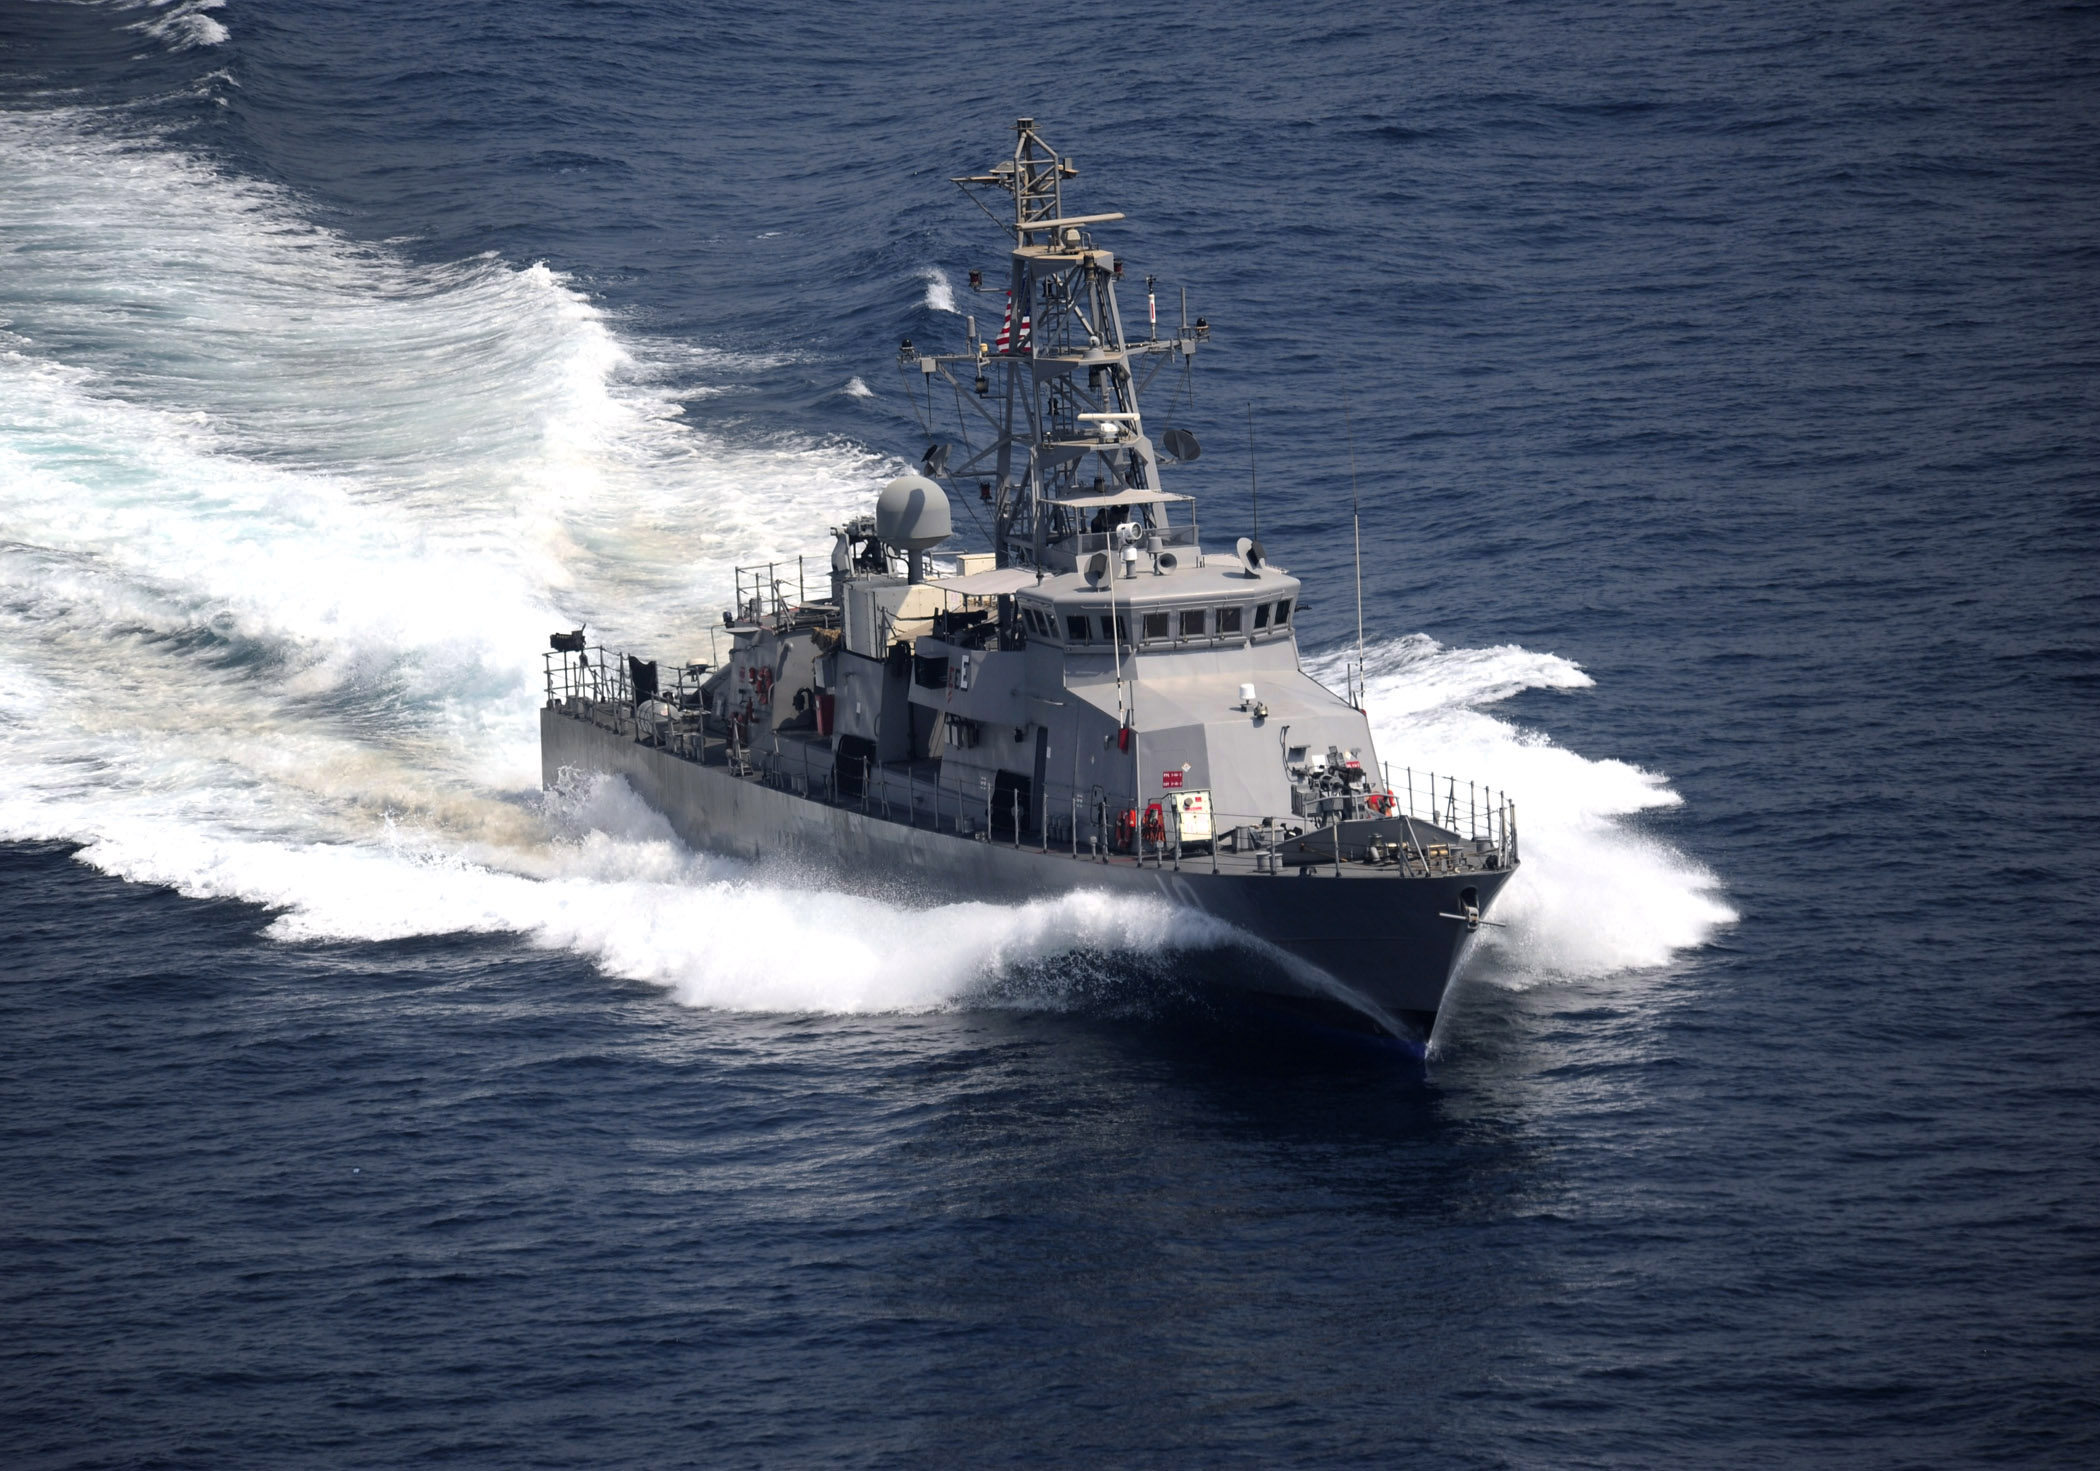 Cyclone-class coastal patrol ship USS Firebolt (PC-10) is underway during an exercise in 2011, US Navy Photo